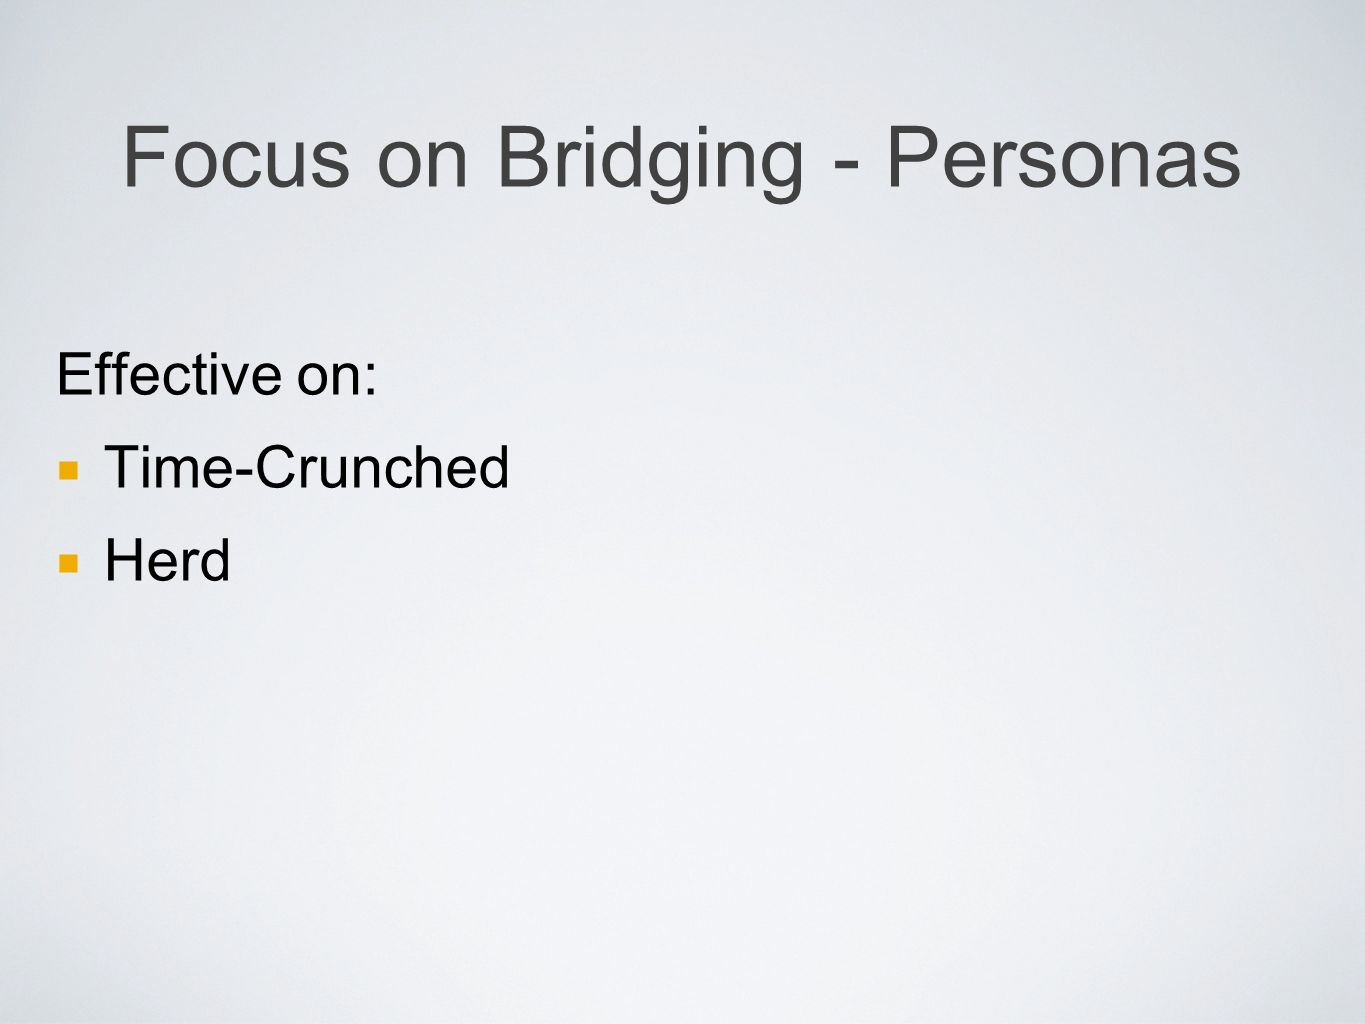 Focus on Bridging - Personas Effective on: Time-Crunched Herd